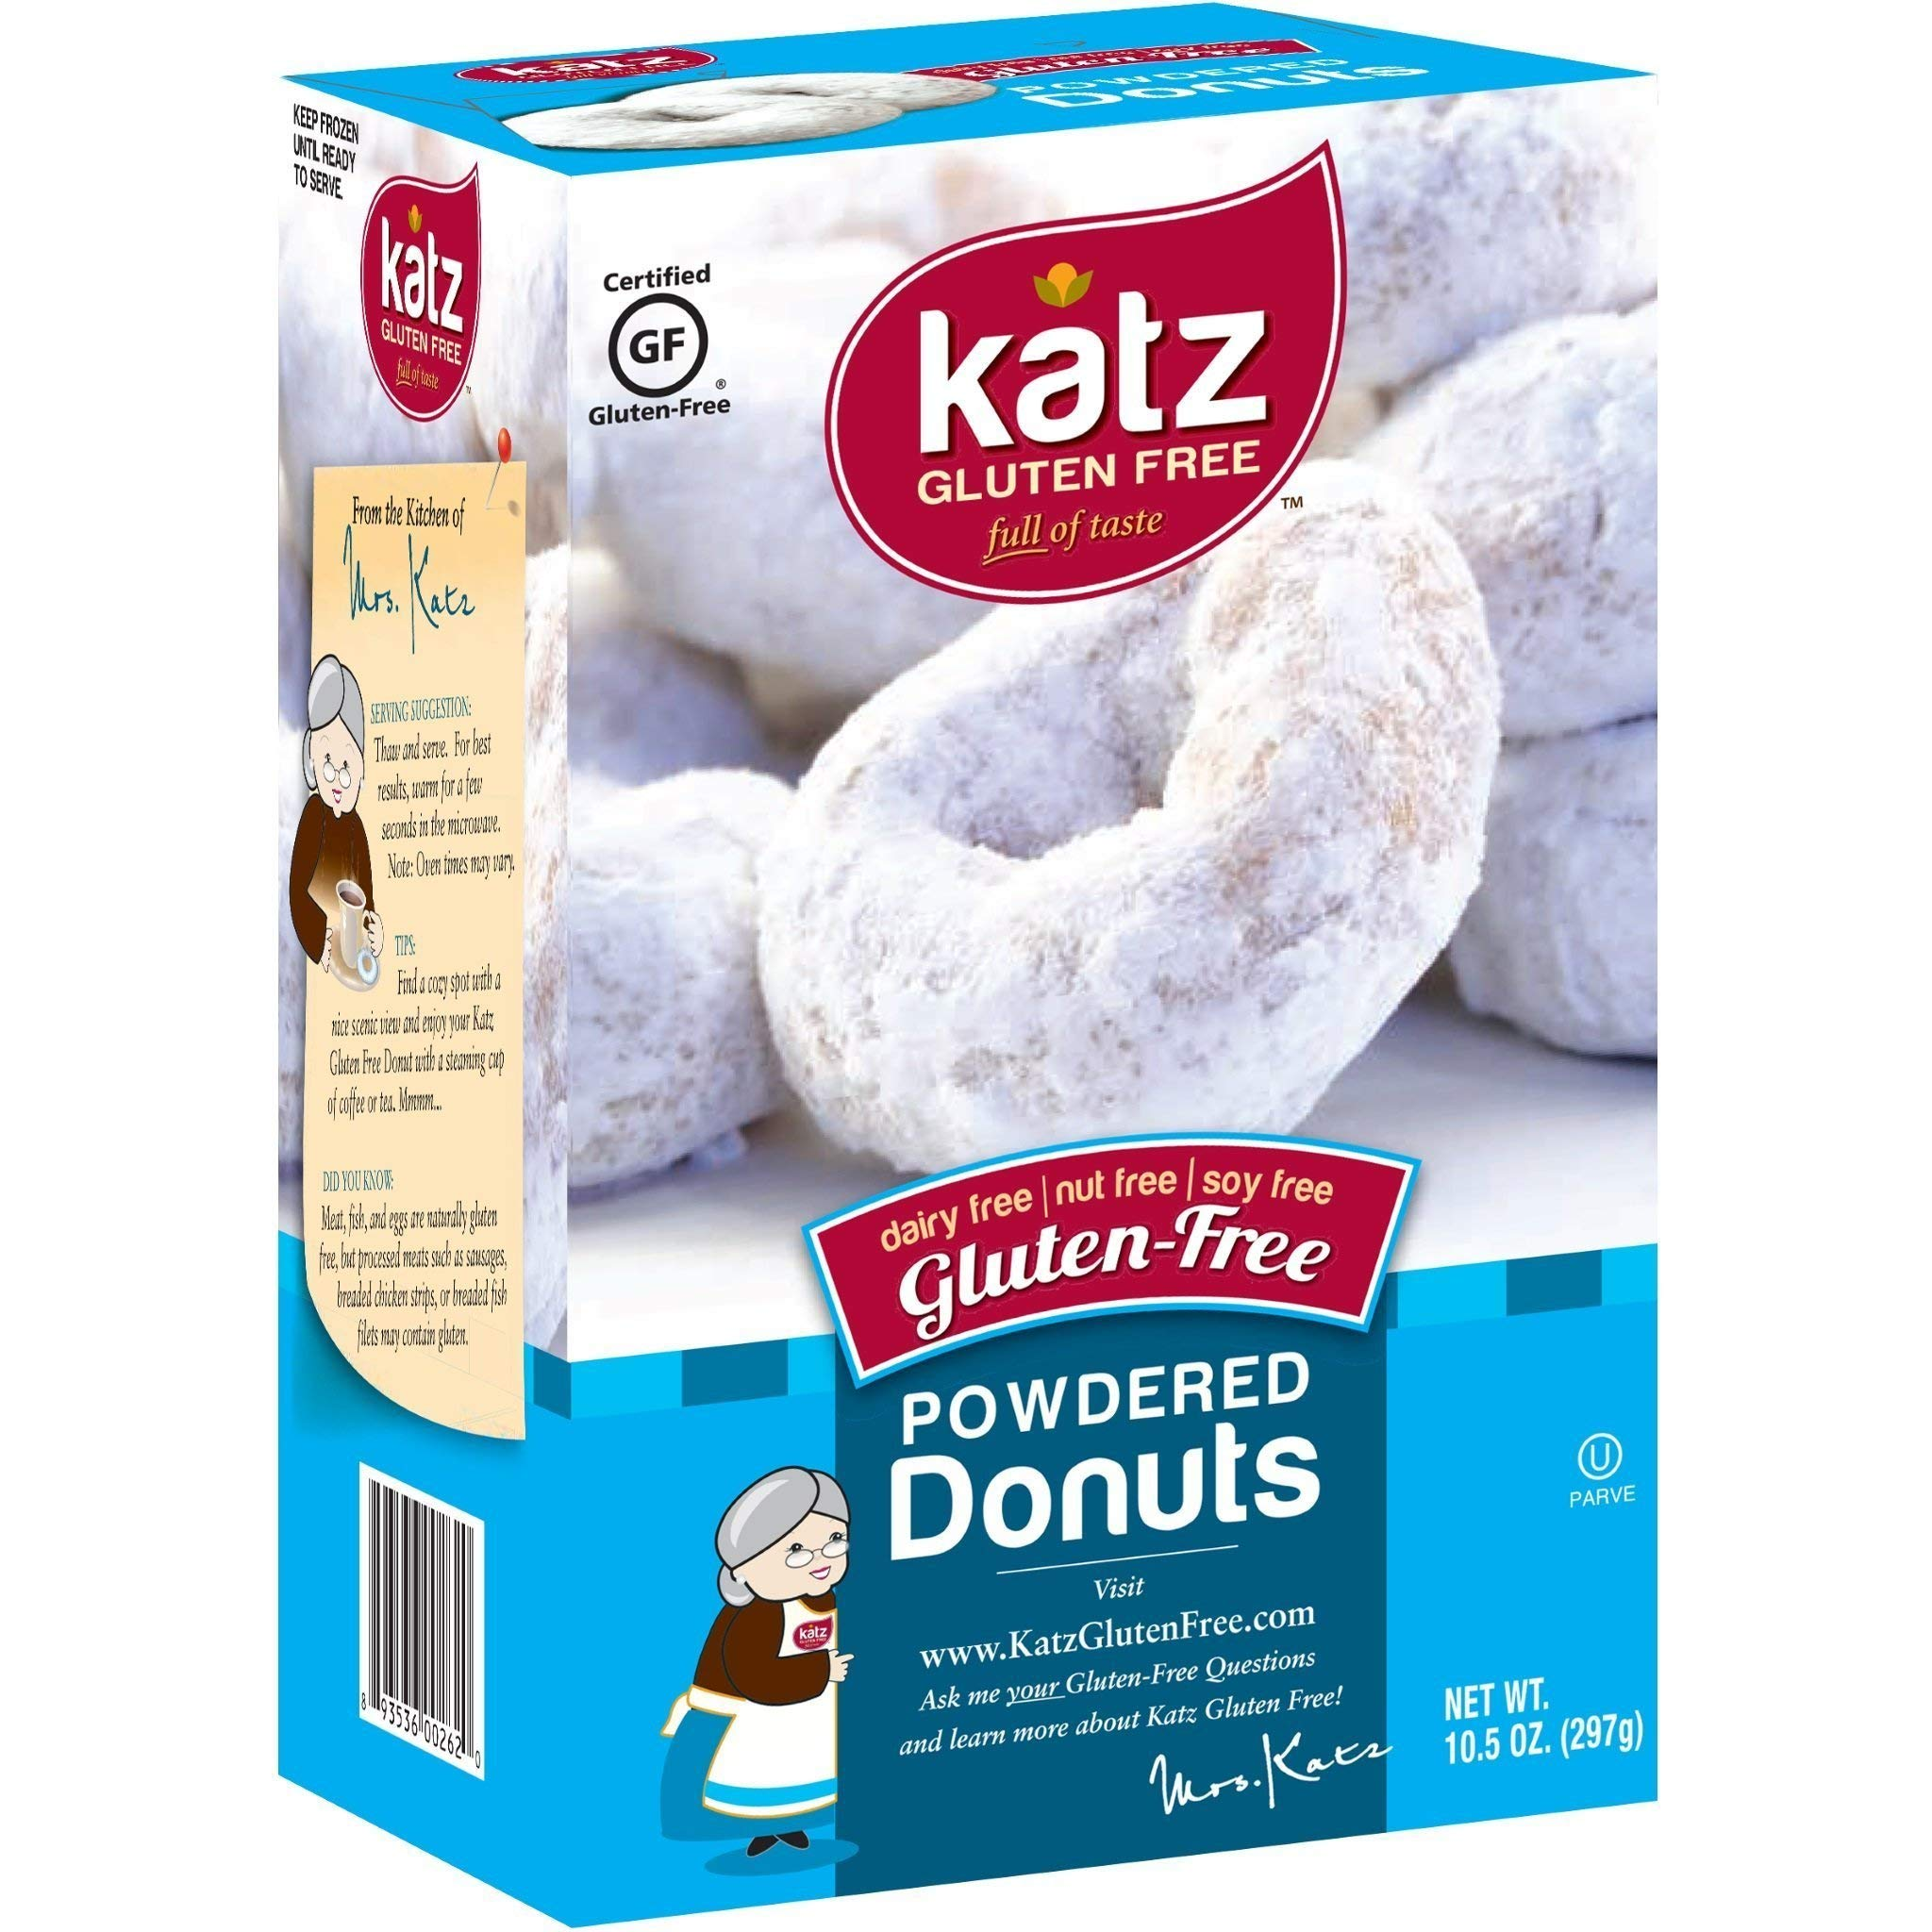 Katz Gluten Free Powdered Donuts | Dairy, Nut, Soy and Gluten Free | Kosher (6 Packs of 6 Donuts, 10.5 Ounce Each) by Katz Gluten Free